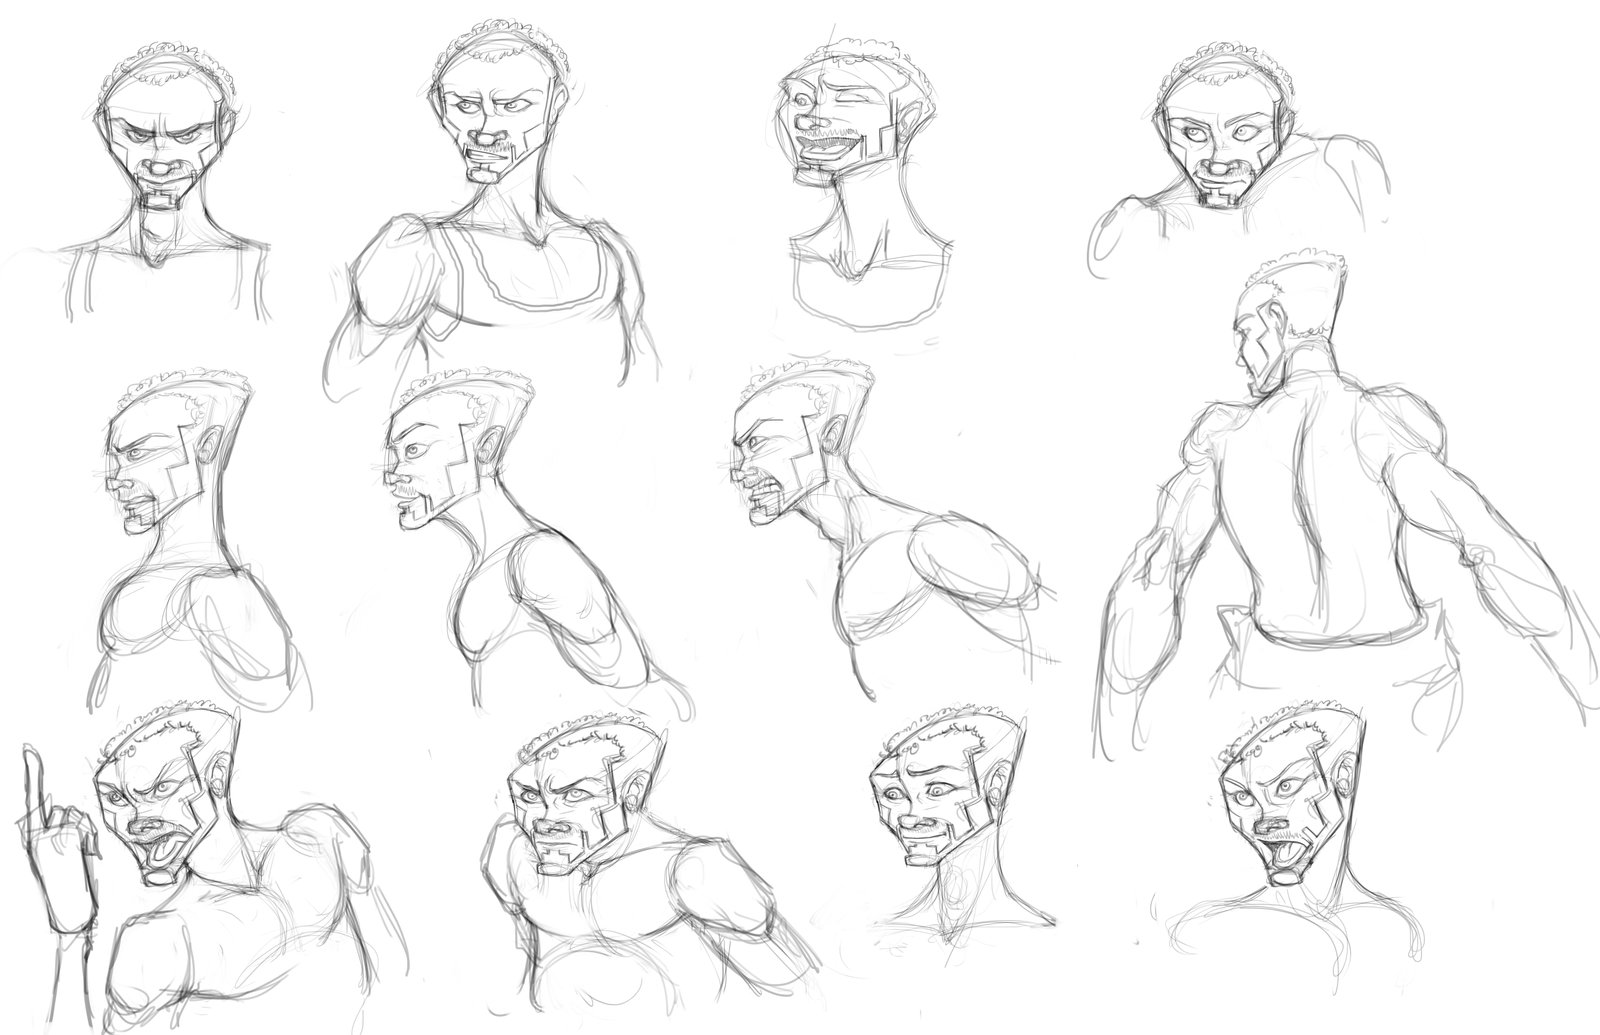 Teel expressions.